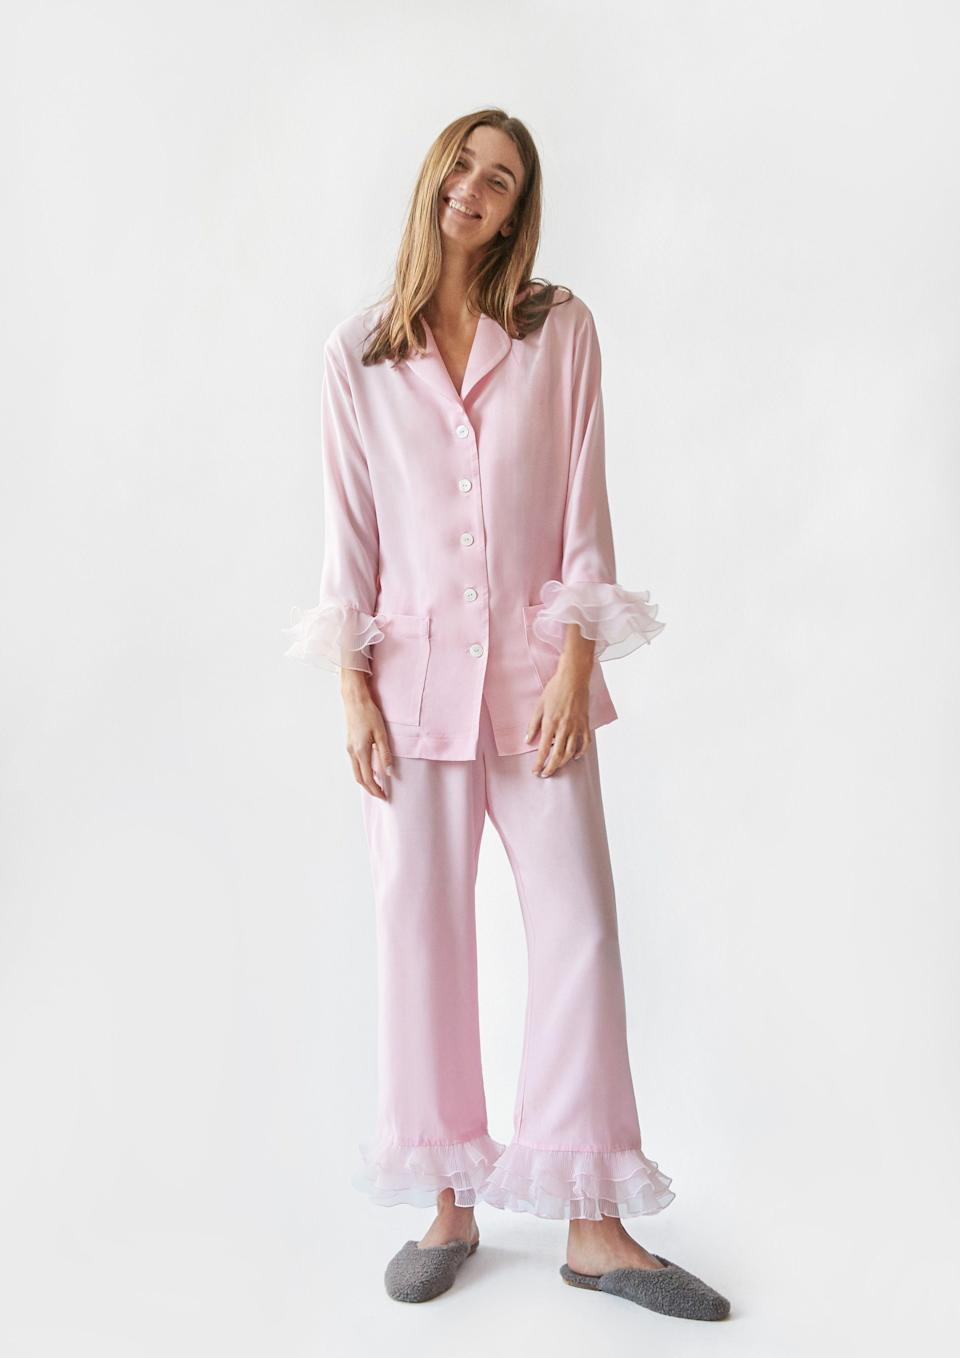 """<p><strong>Sleeper</strong></p><p>the-sleeper.com</p><p><strong>$168.00</strong></p><p><a href=""""https://the-sleeper.com/en/product/pierrot-party-pajama-set-in-pink/"""" rel=""""nofollow noopener"""" target=""""_blank"""" data-ylk=""""slk:Shop It"""" class=""""link rapid-noclick-resp"""">Shop It</a></p><p>The Ukranian </p>"""